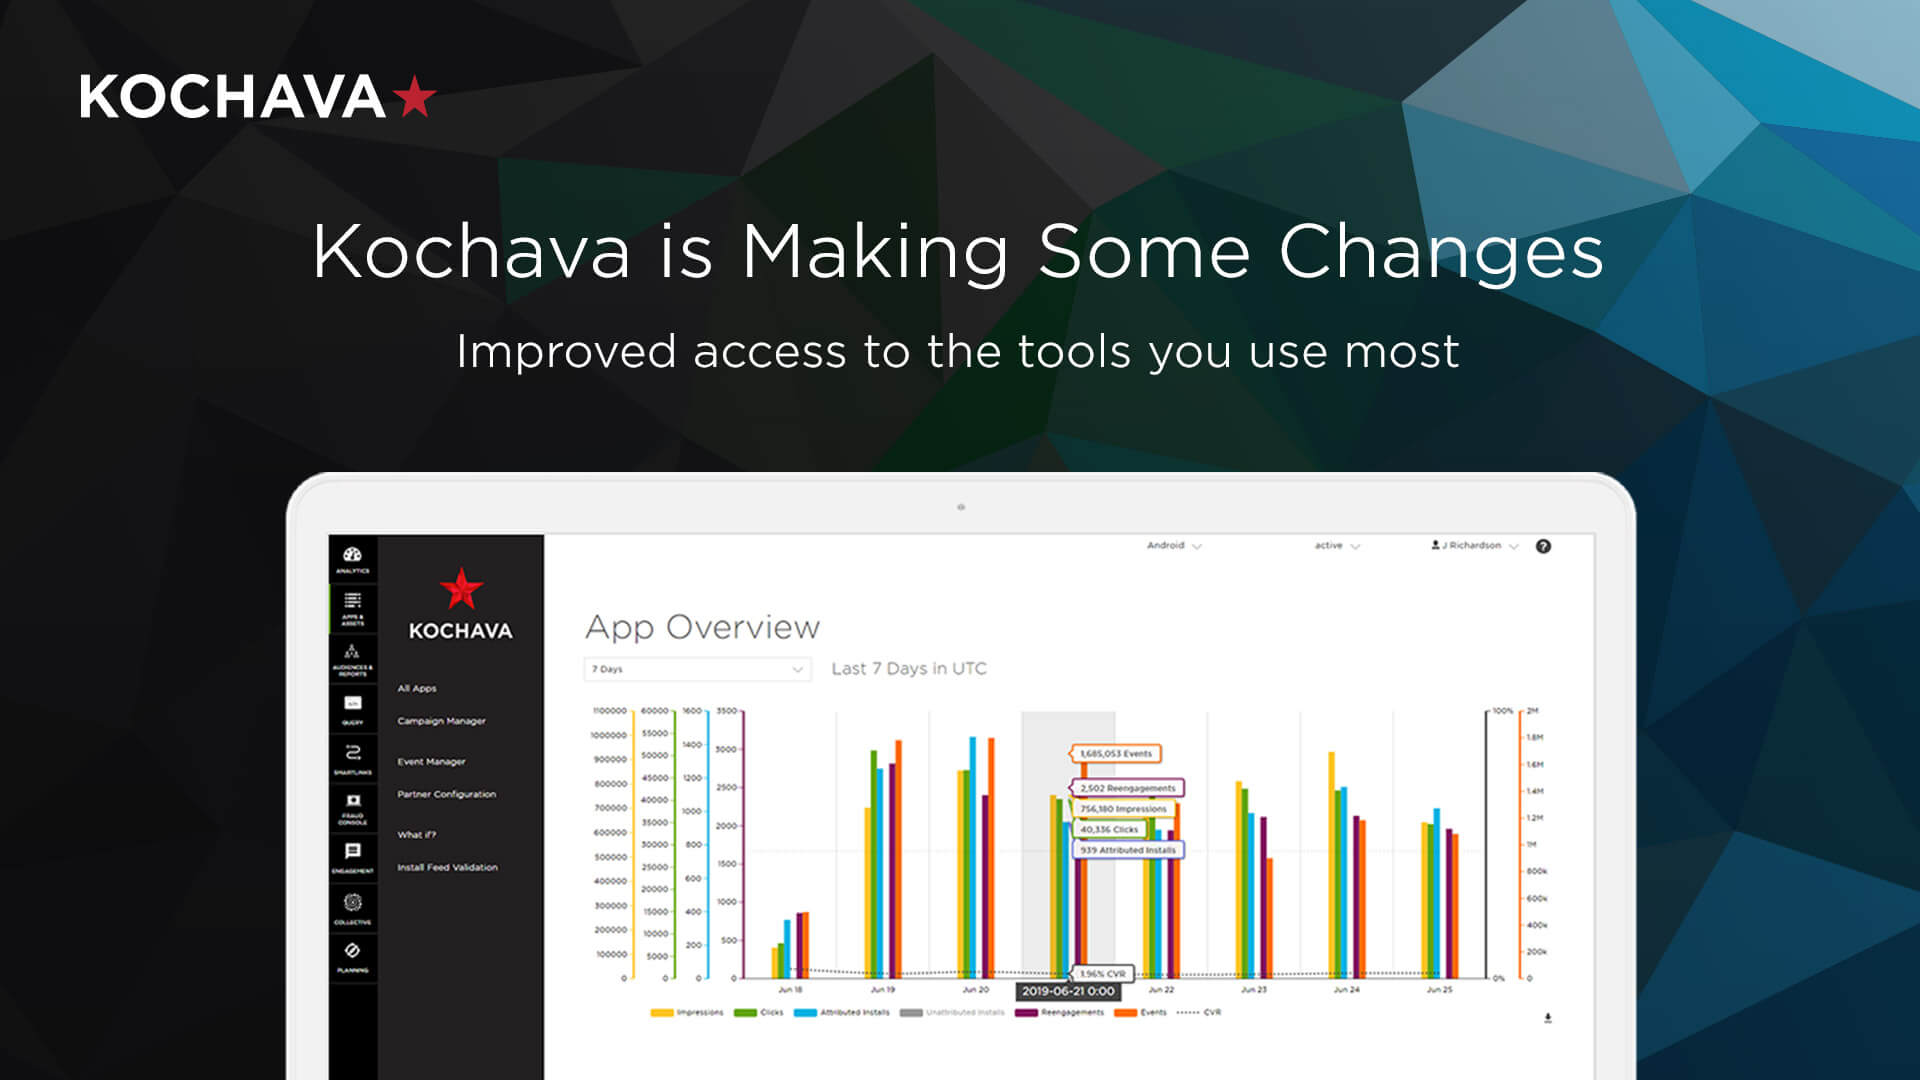 The new Kochava user interface